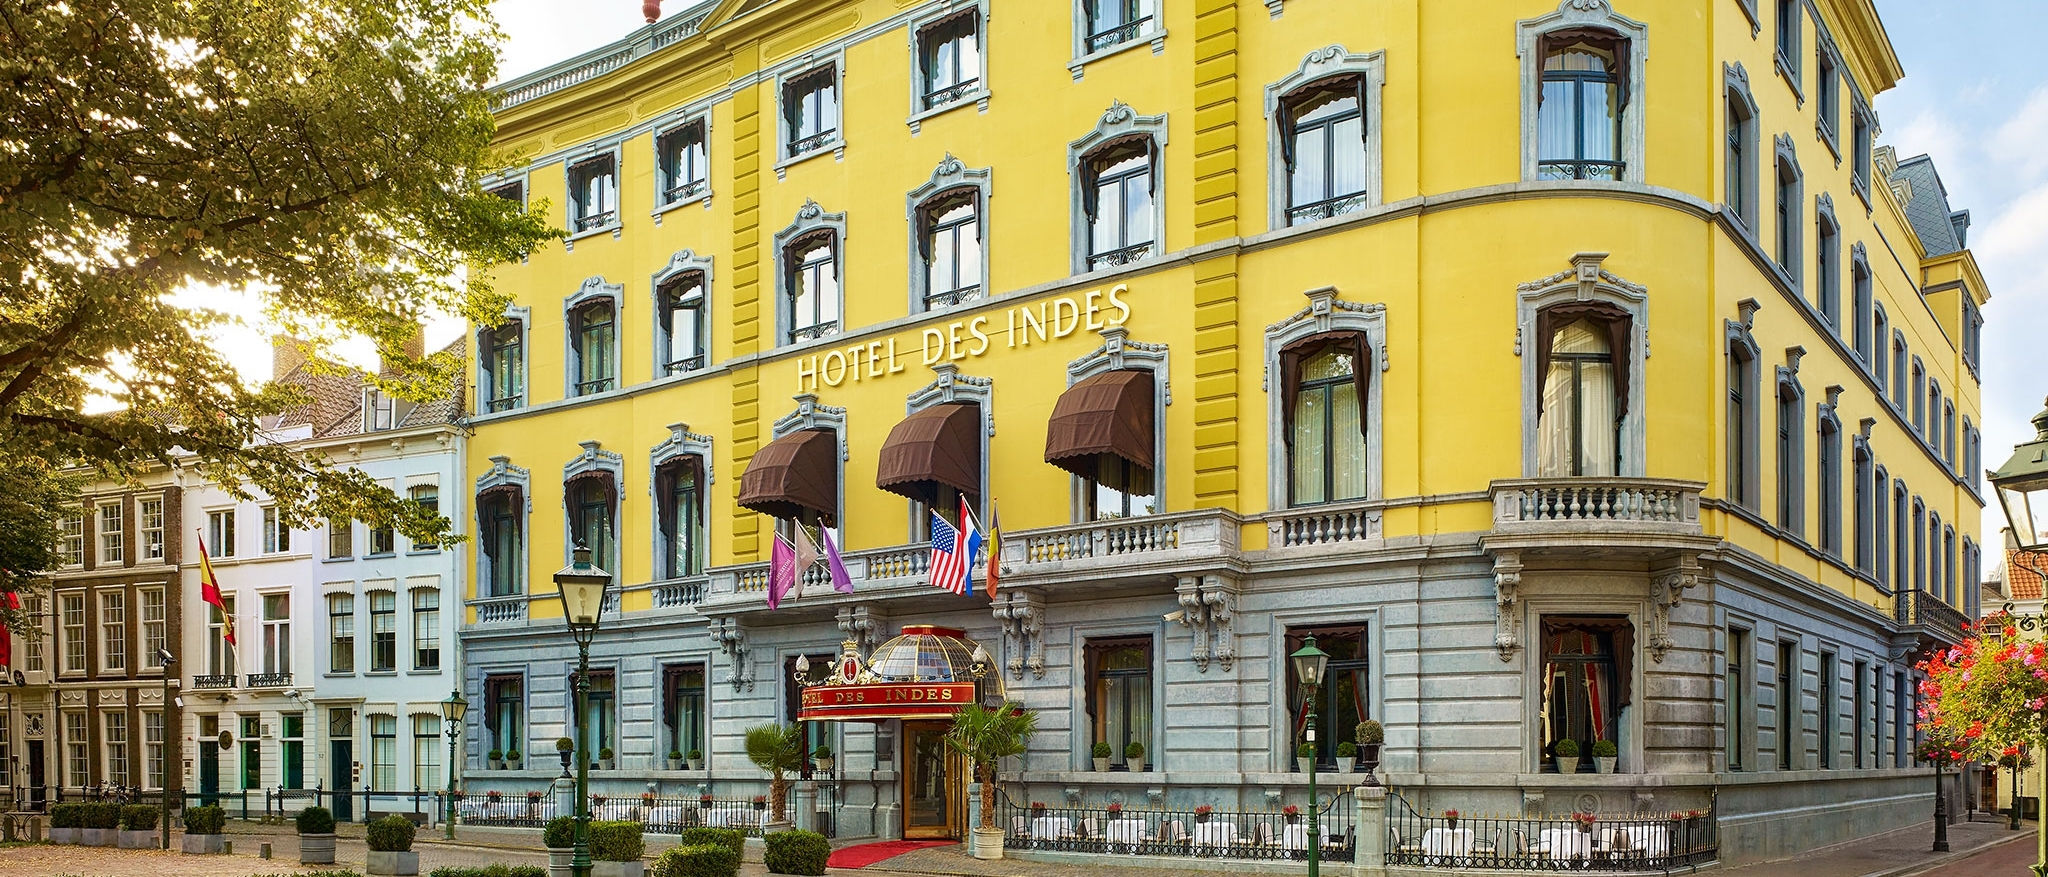 Hotel Des Indes for an evening – review